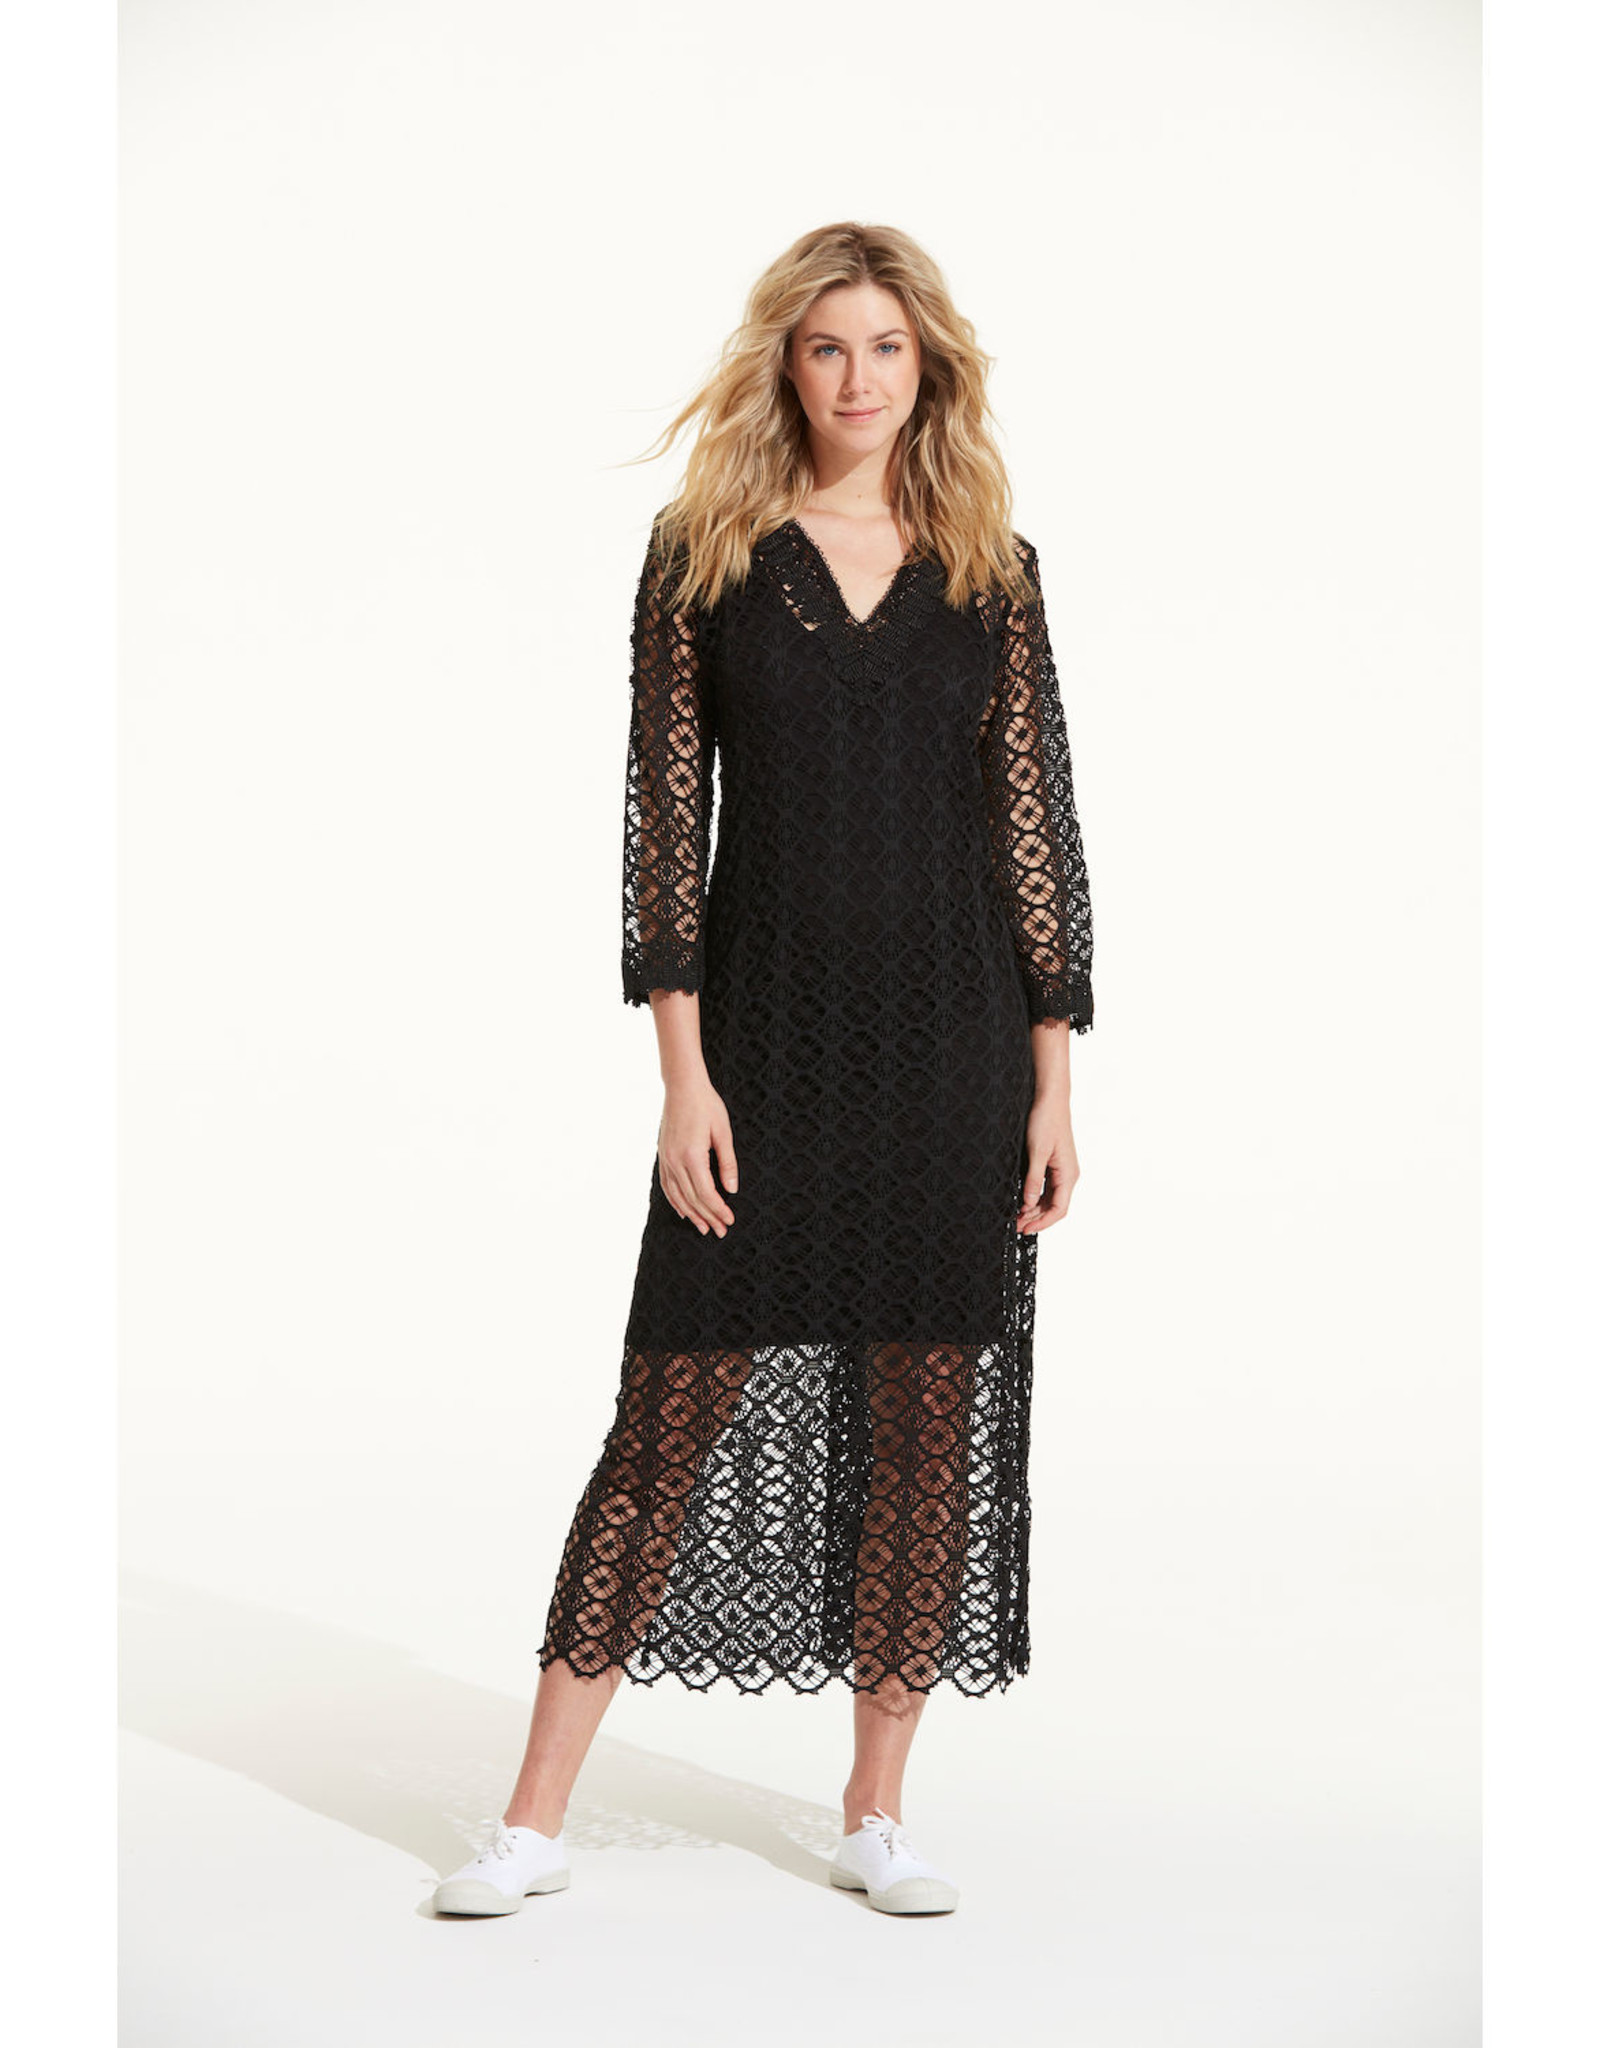 ONESEASON TAMSIN CROCHET BLACK